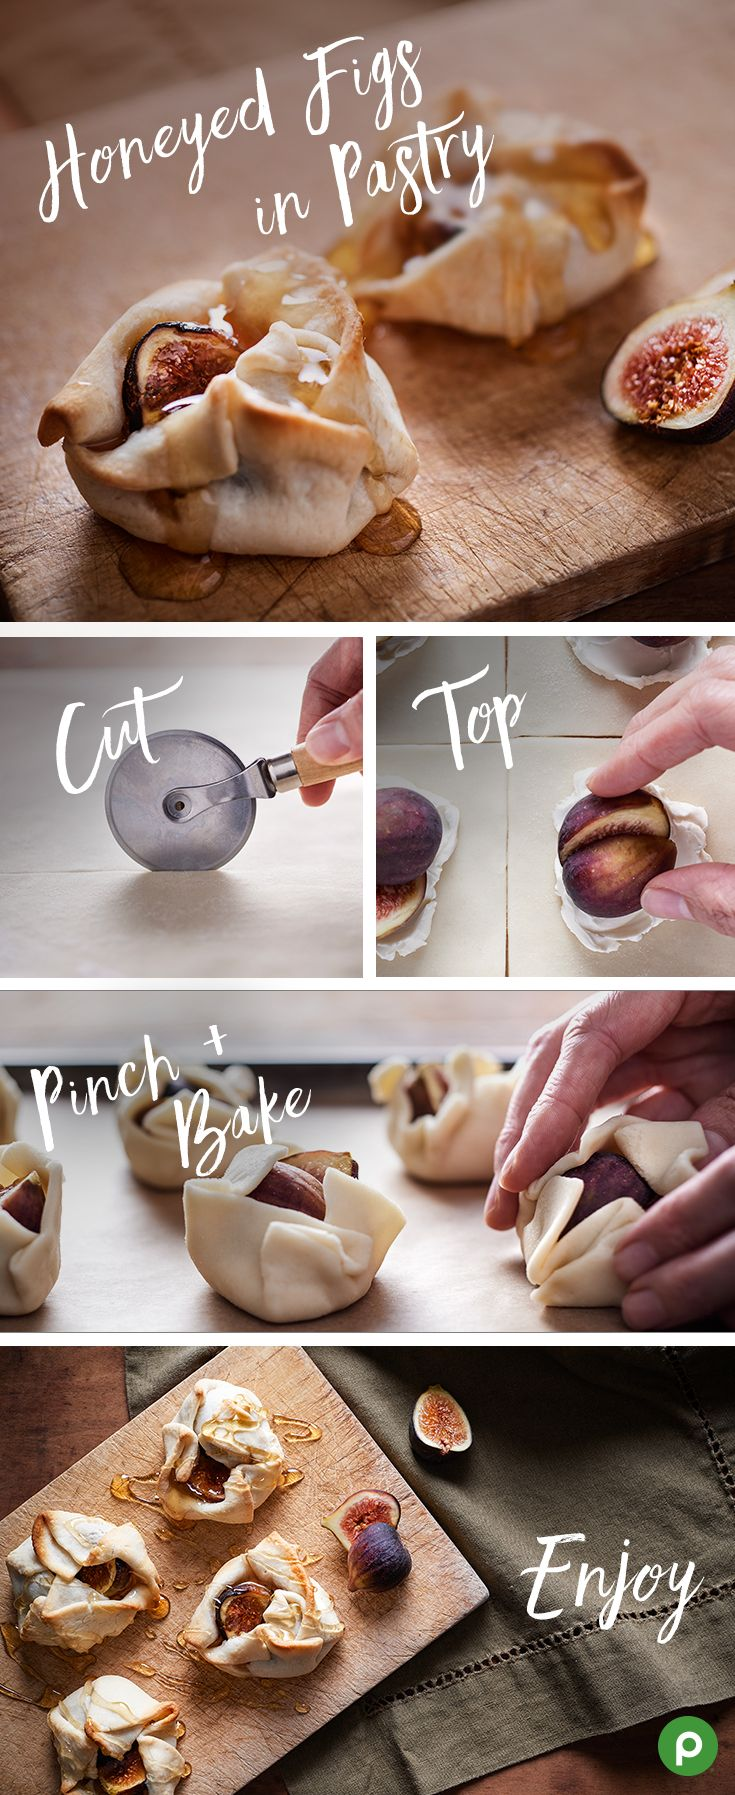 Make sure to bake plenty of these Honeyed Figs in Pastry for your Thanksgiving dessert, because the whole family is going to want more. Thankfully, they're easy to make with this Publix recipe. Cut a ready-to-bake piecrust in eight 3-inch squares. Place cream cheese in the middle of each square, top with a fig, and drizzle with honey. Pinch the dough together around the figs, and bake until they're golden brown.